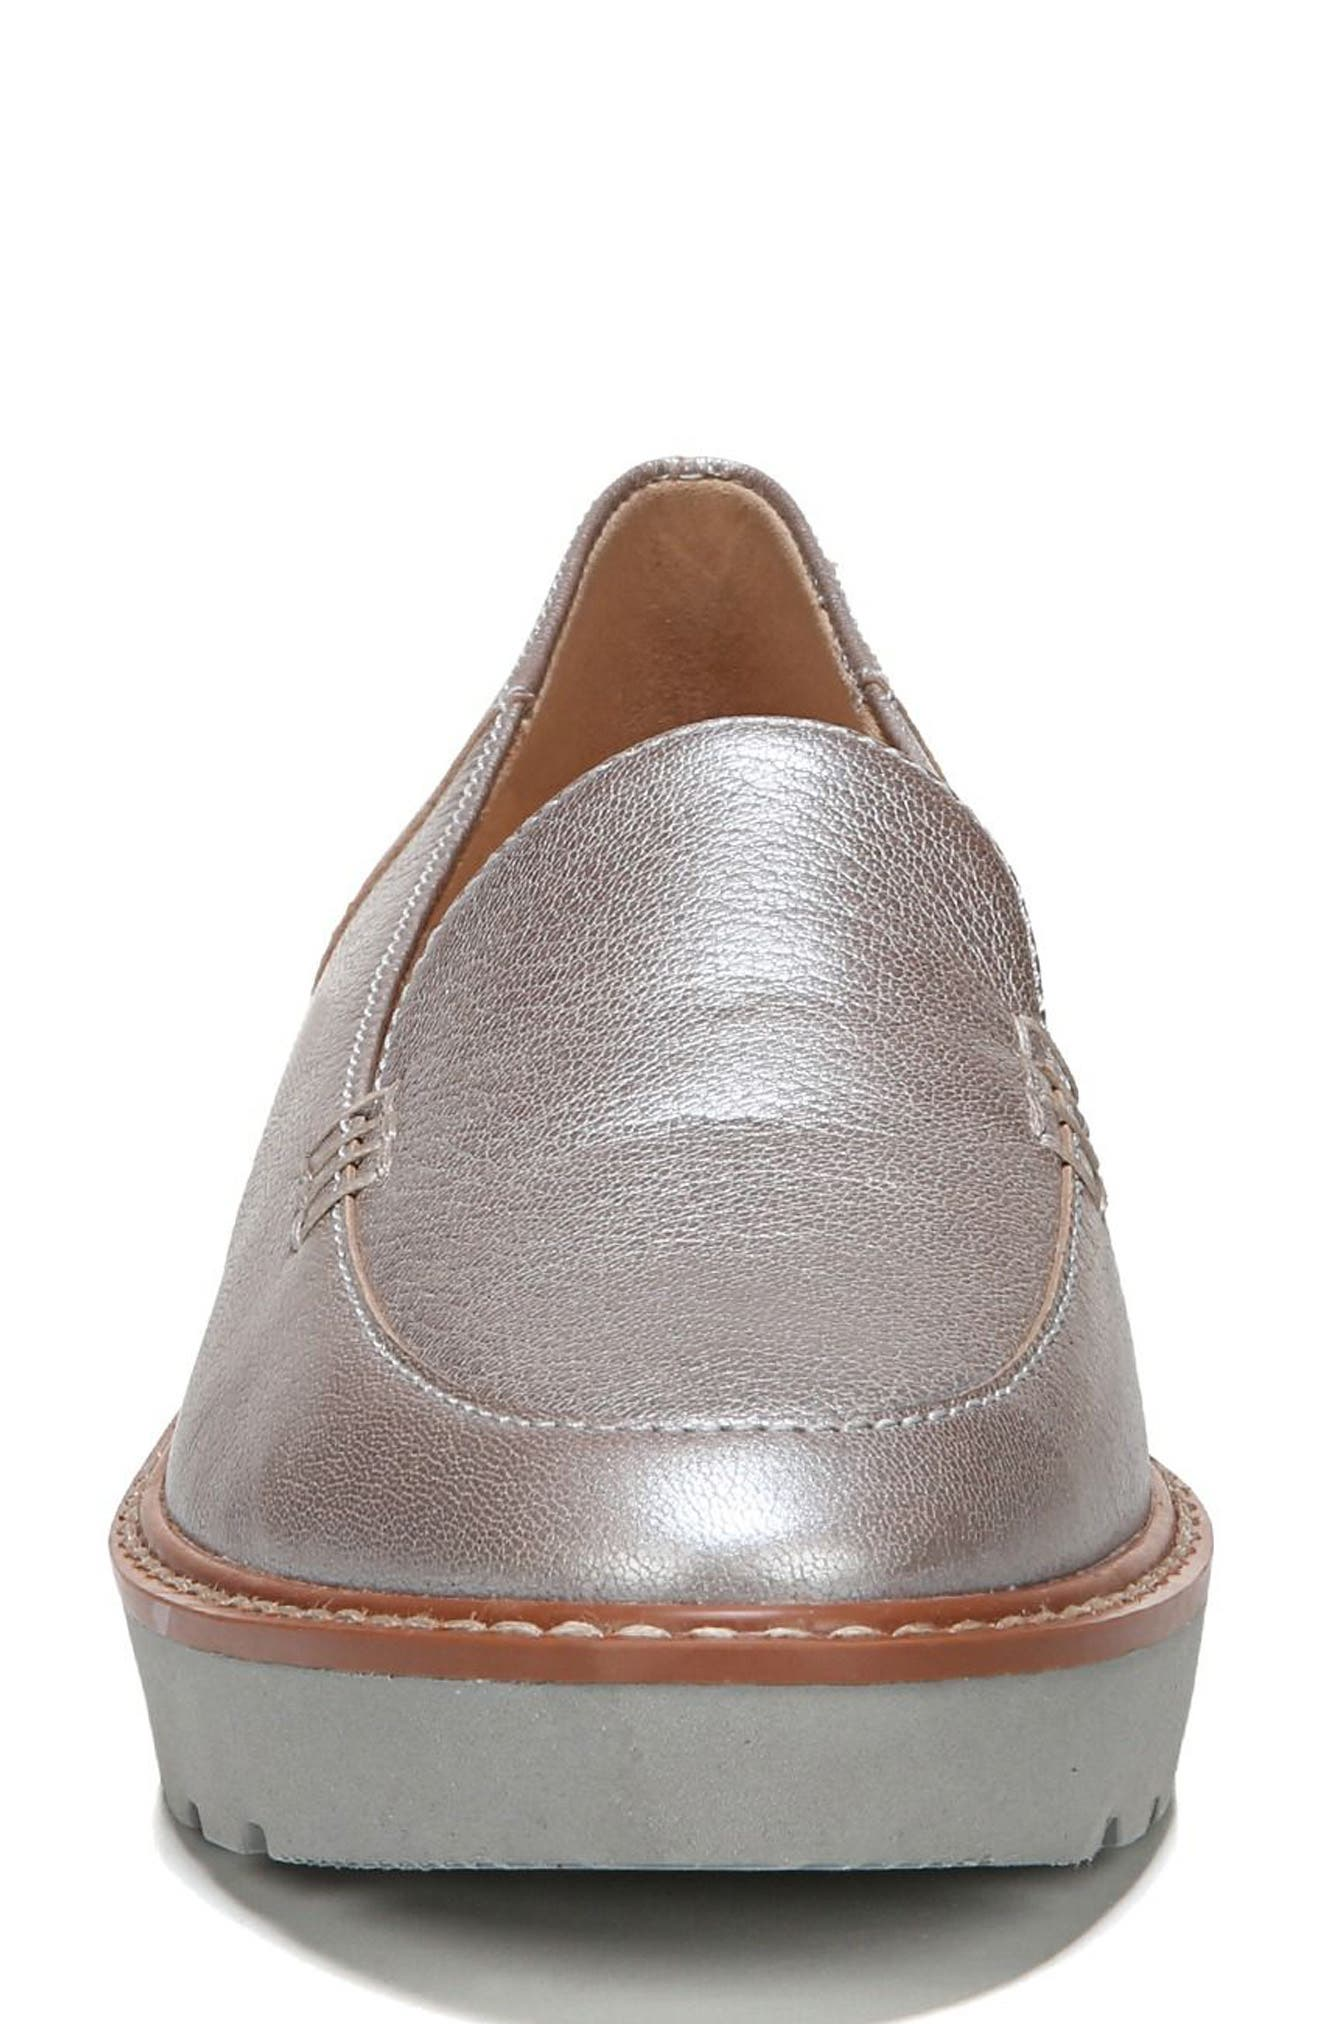 Andie Loafer,                             Alternate thumbnail 4, color,                             Silver Leather